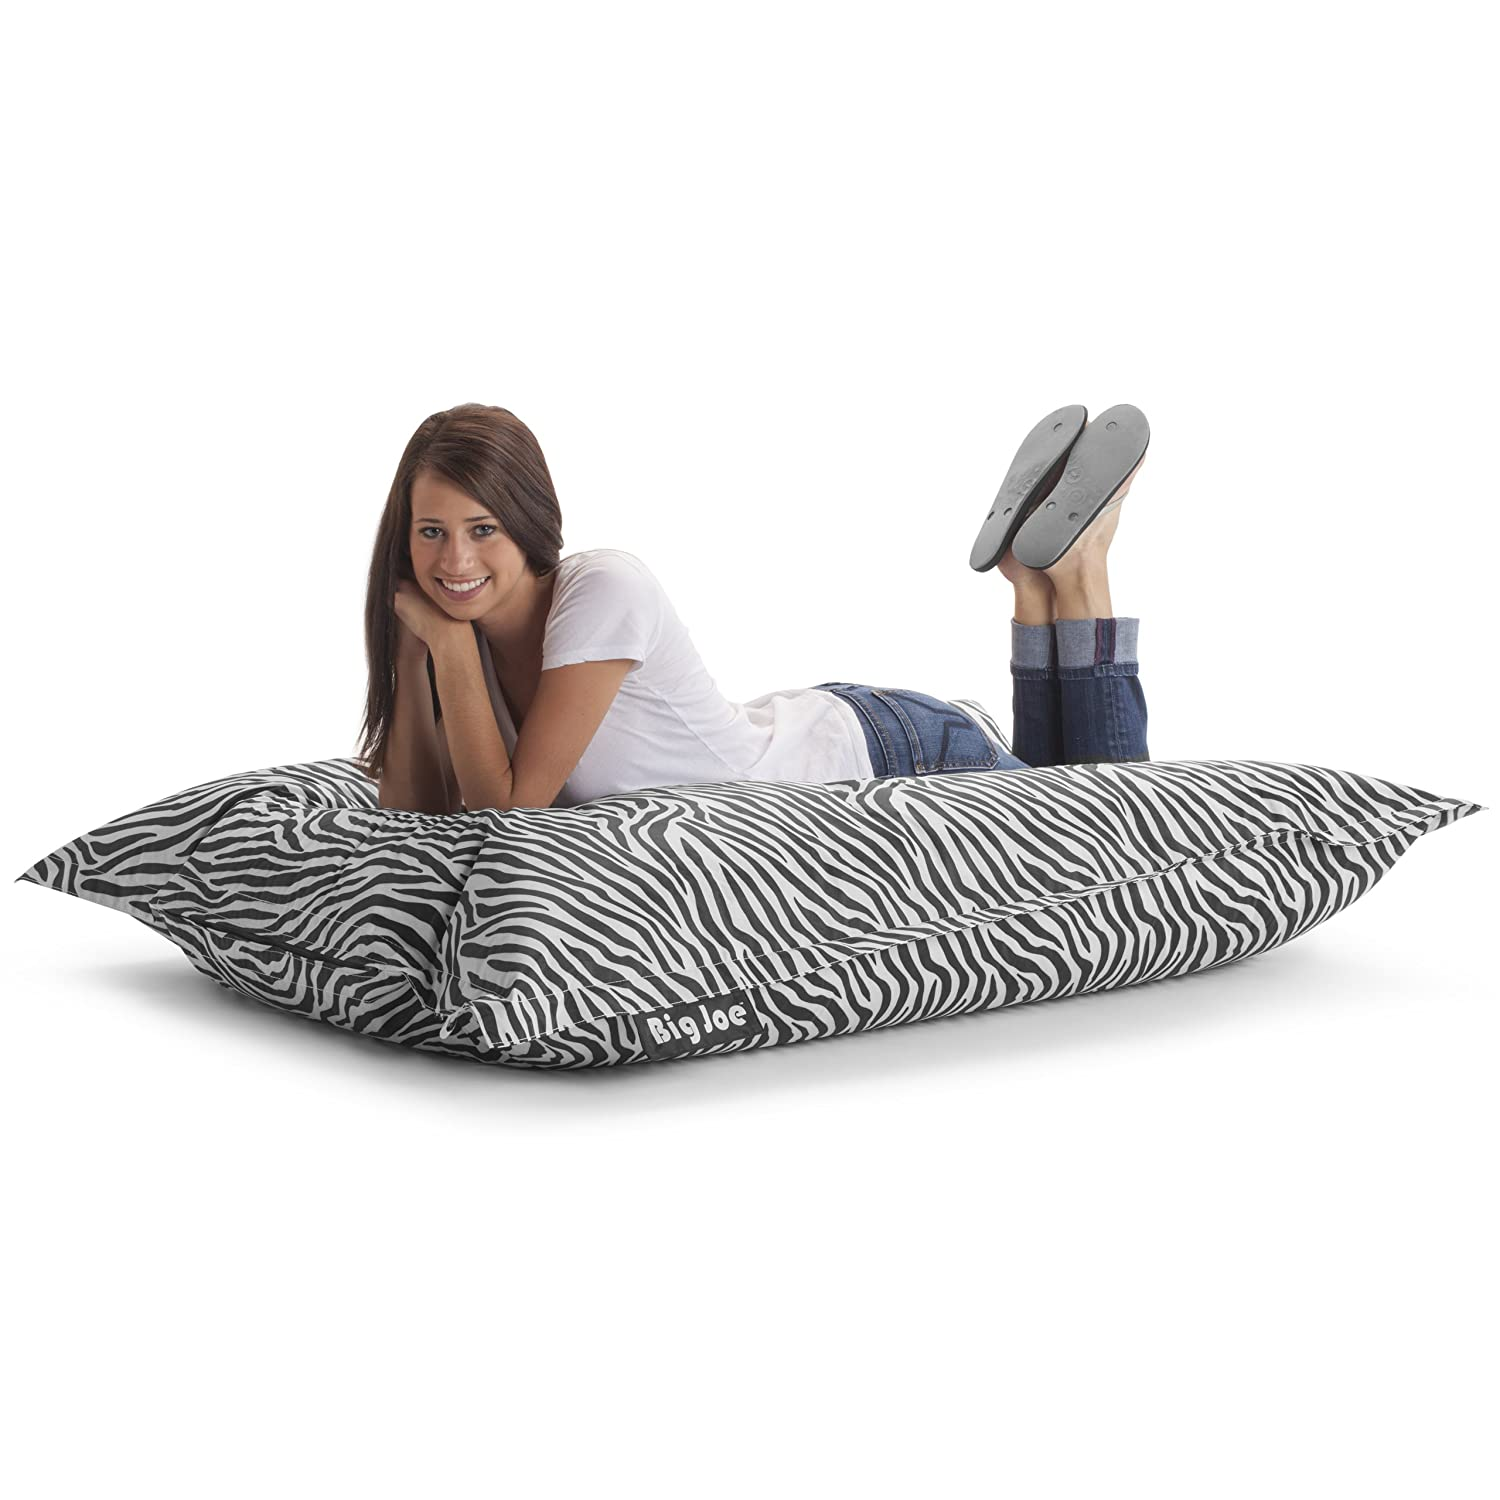 Amazon.com: Big Joe Original Bean Bag Chair, Zebra: Kitchen